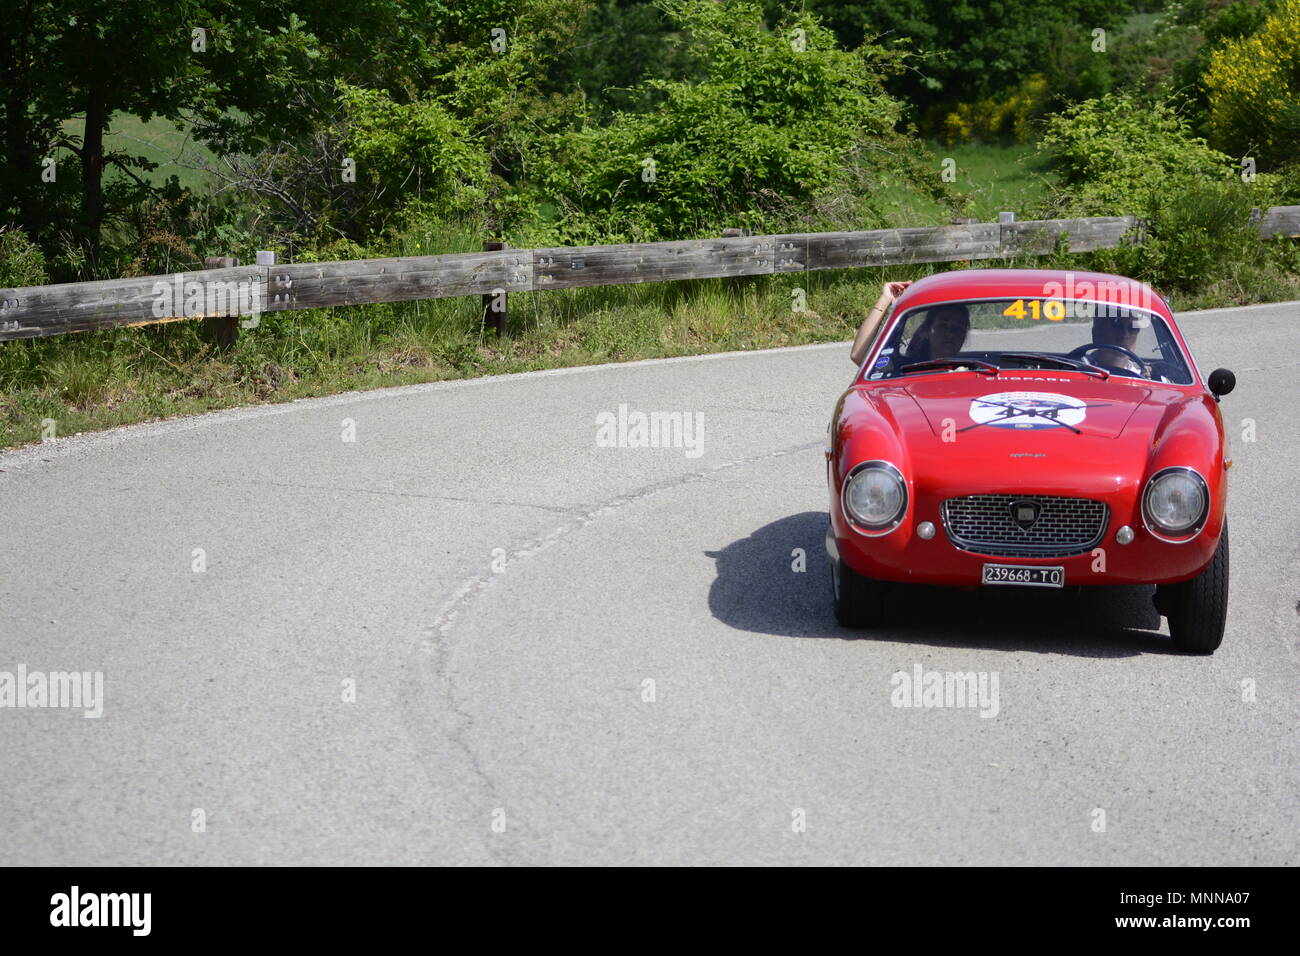 PESARO COLLE SAN BARTOLO , ITALY - MAY 17 - 2018 LANCIA APPIA GTZ1957 :on an old racing car in rally Mille Miglia 2018 the famous italia - Stock Image